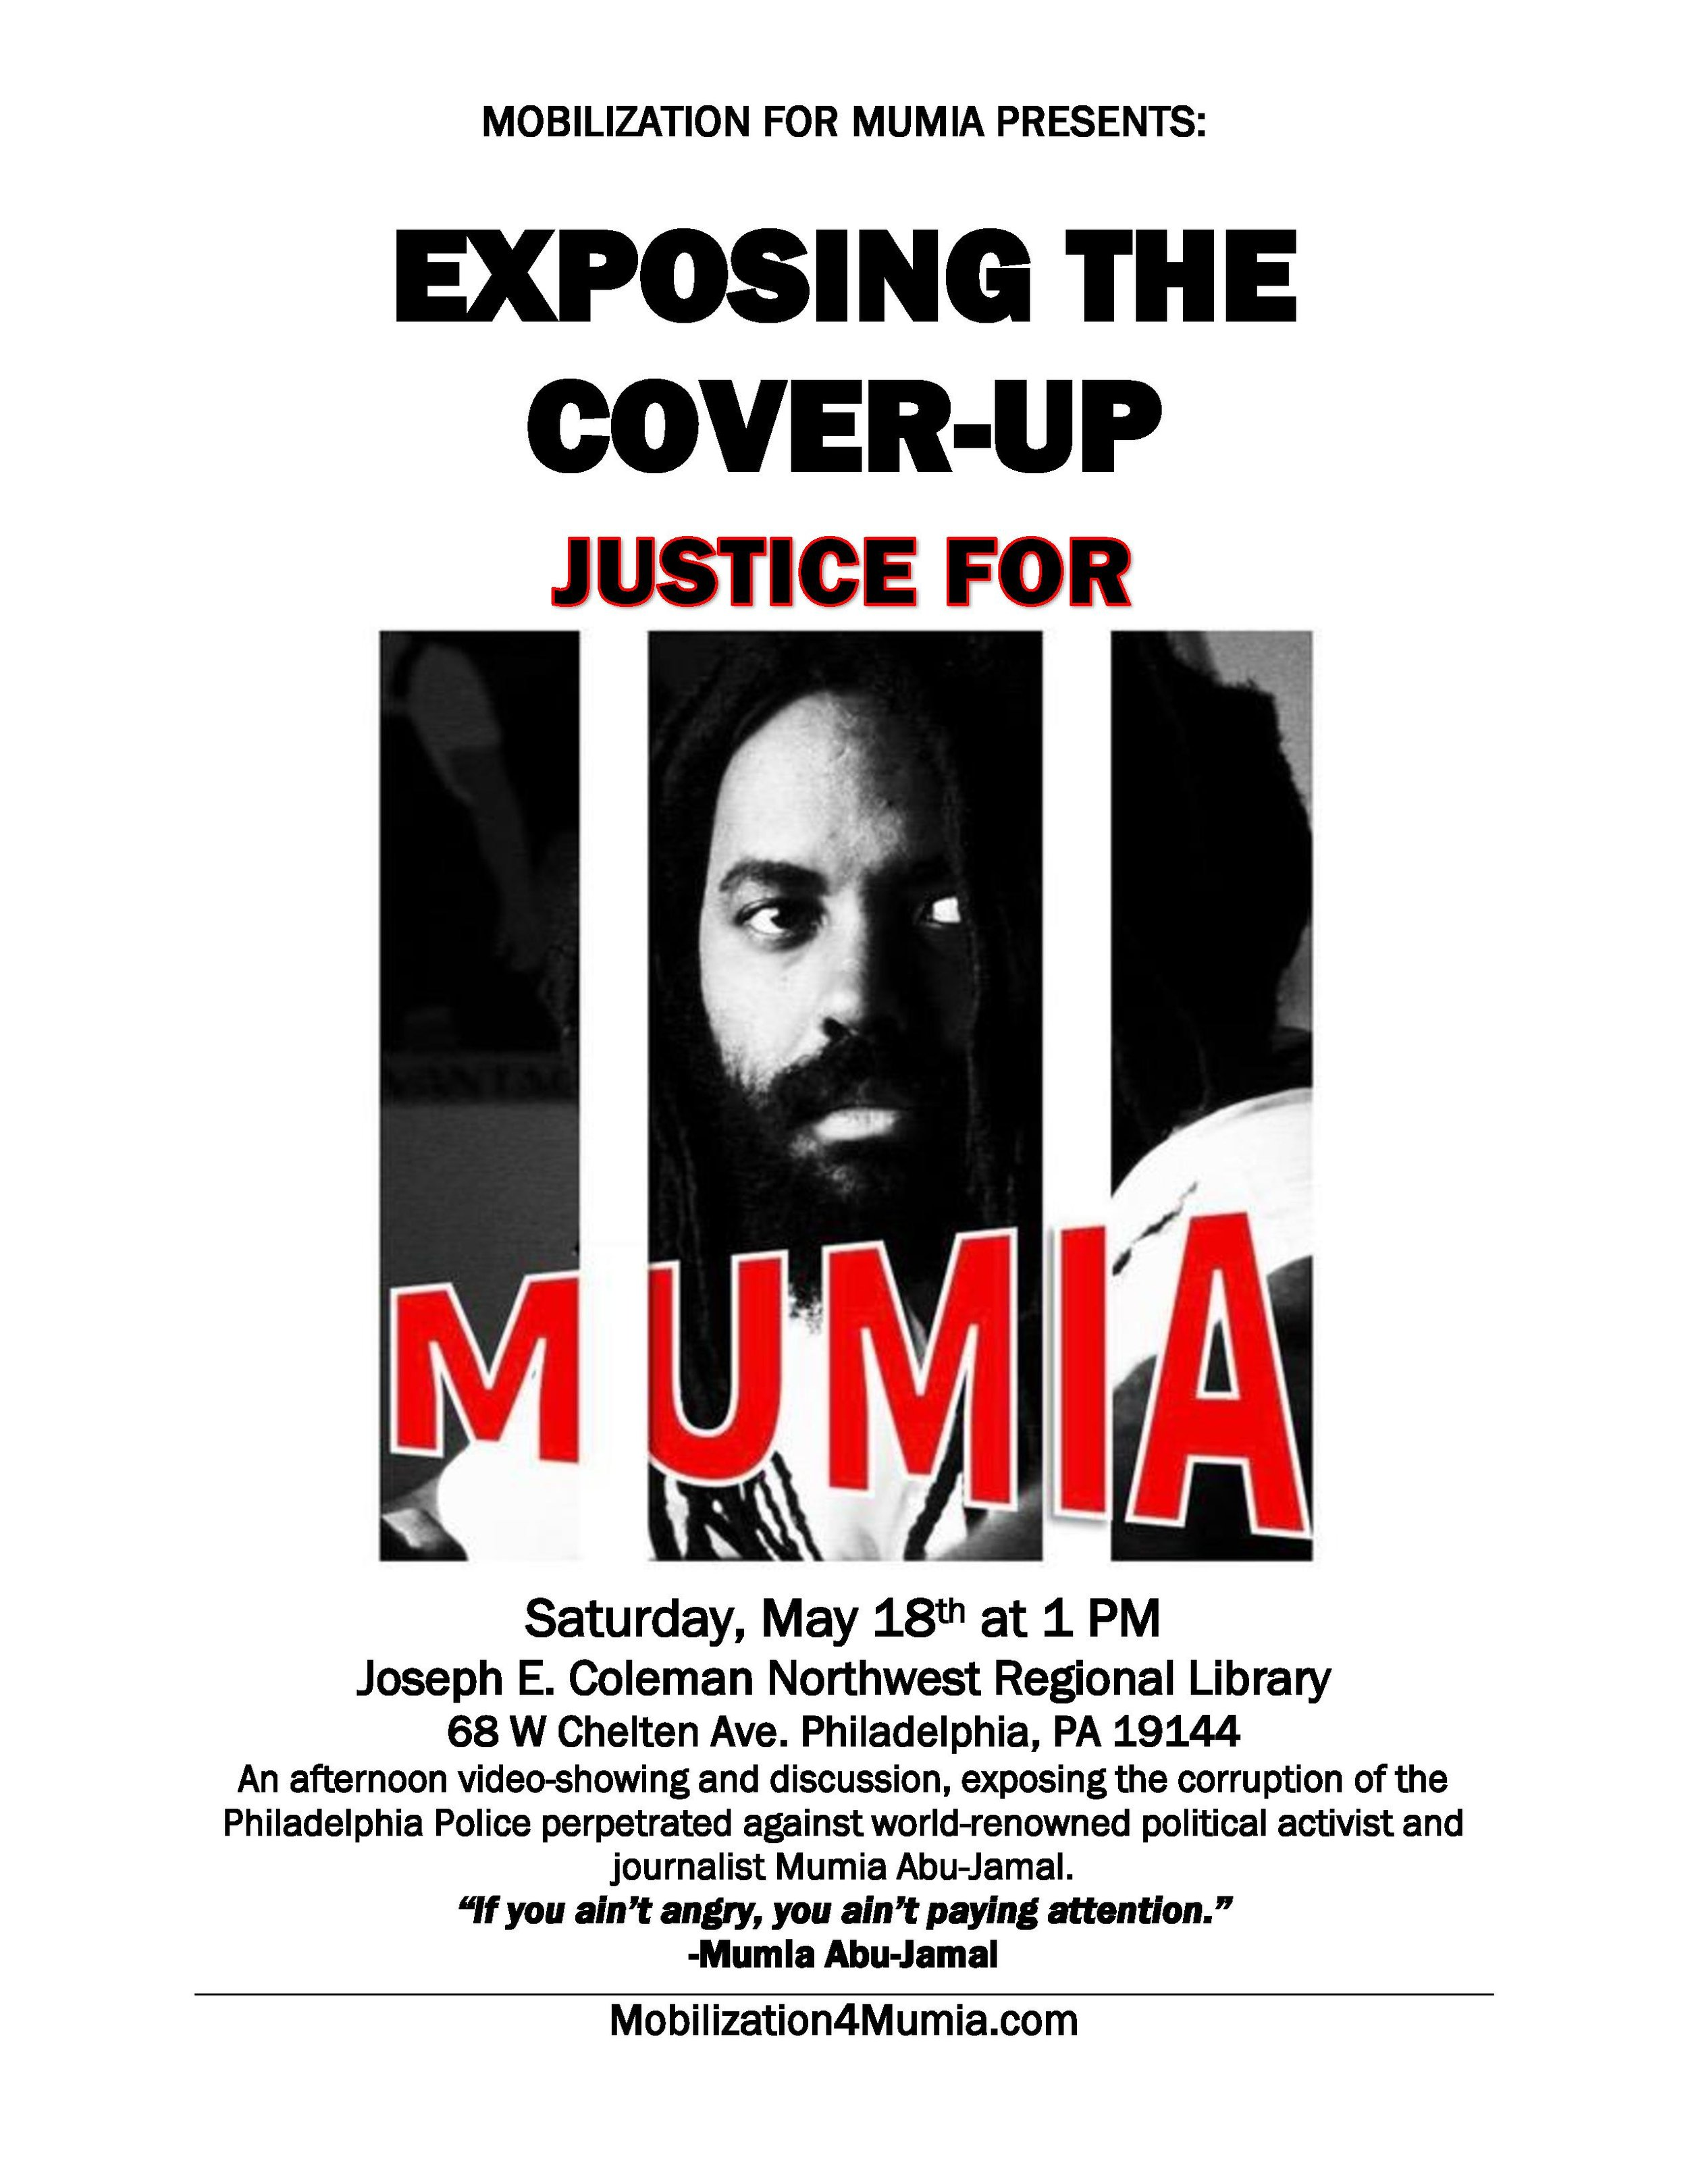 MUMIA May 18th Event Flyer FINAL-page-001.jpg